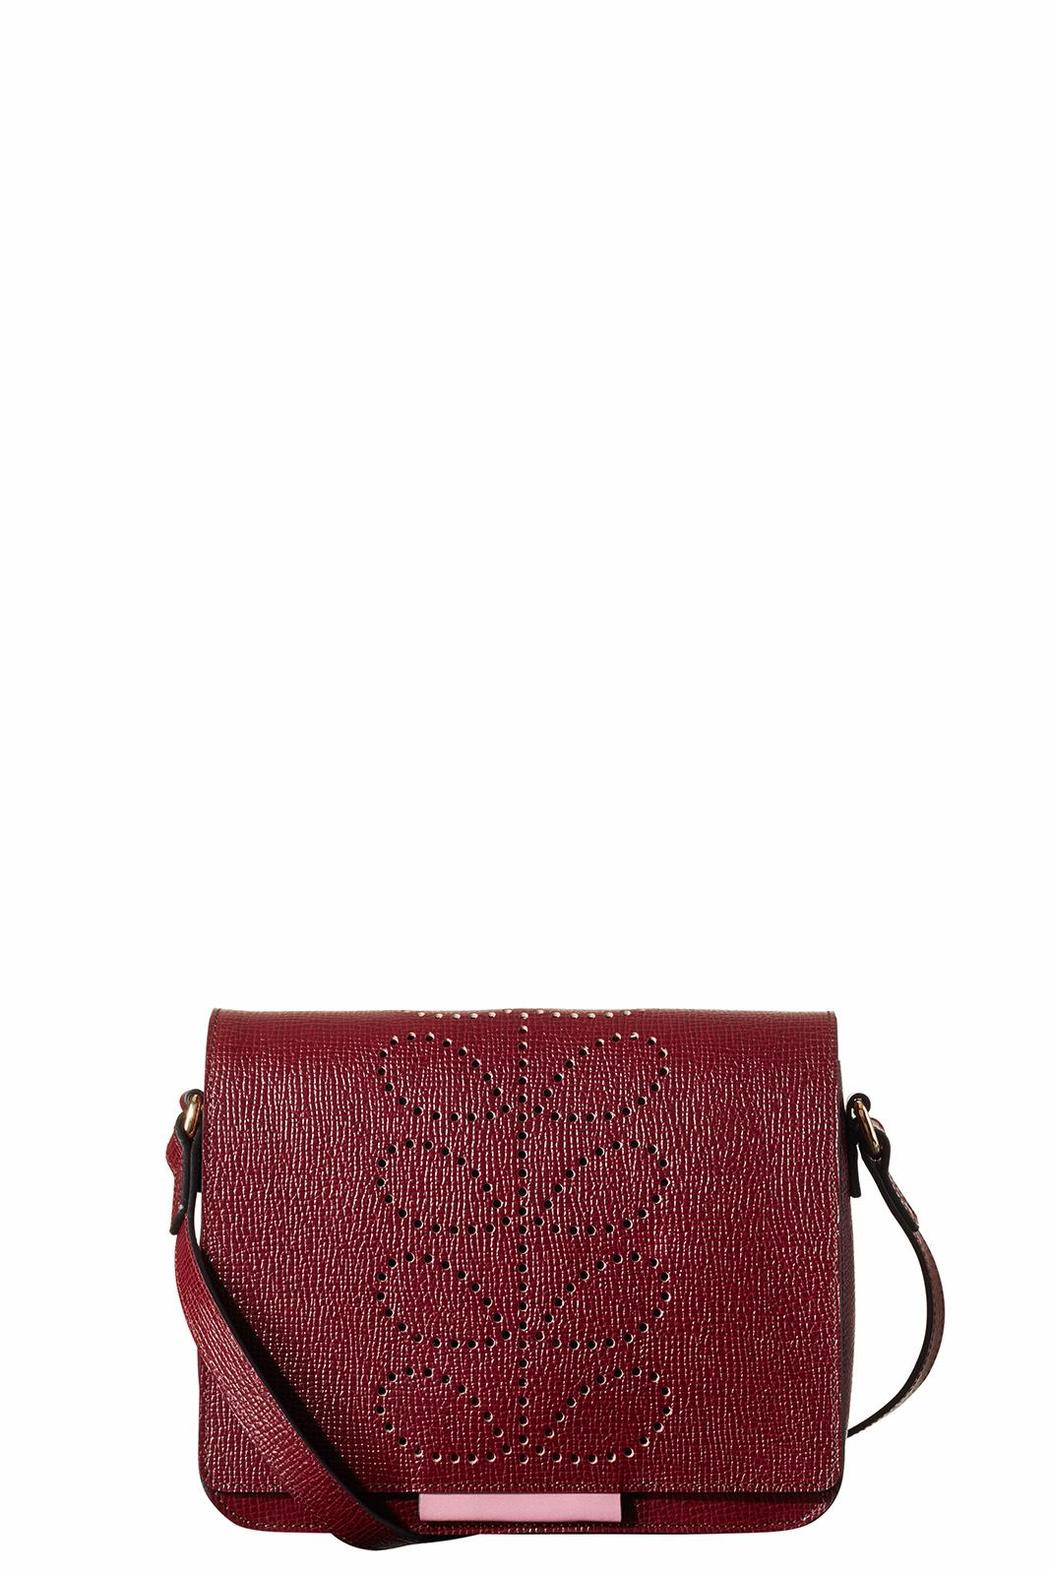 Orla Kiely Ivy Leather Berry from Dublin by Anastasiashop — Shoptiques